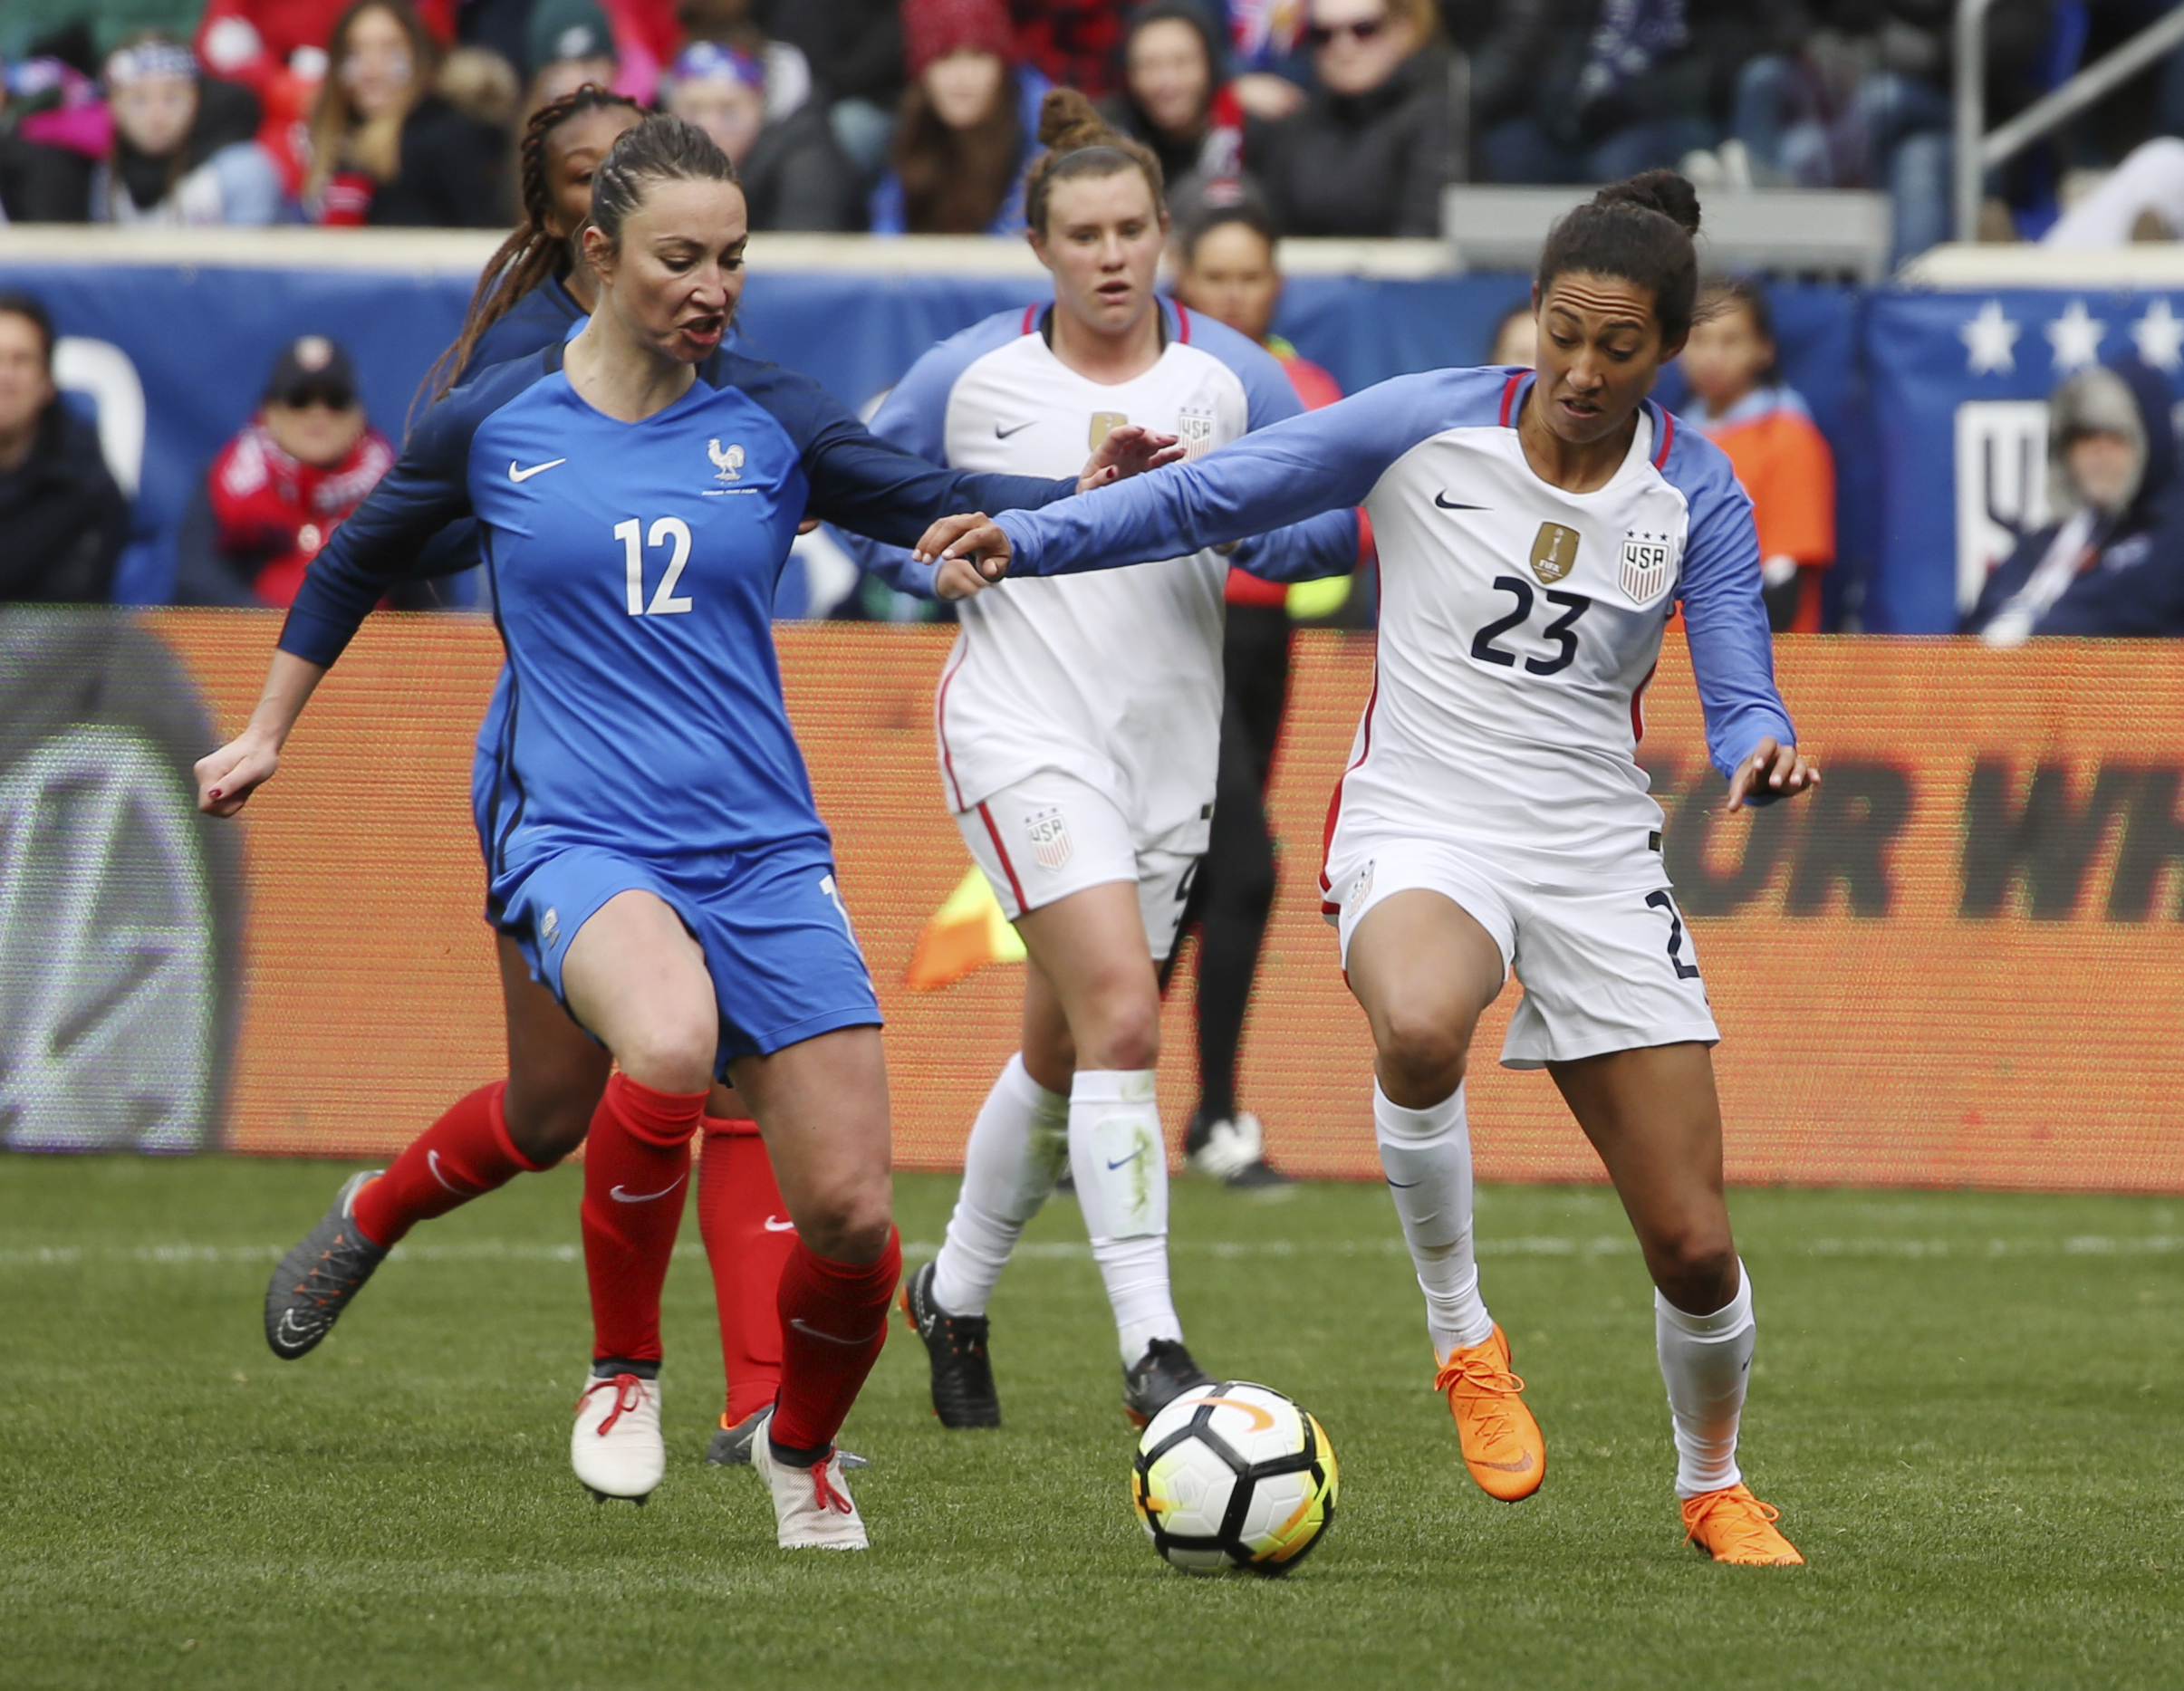 United States forward Christen Press (23) keeps the ball away from France midfielder Gaetane Thiney (12) during the second half of a SheBelieves Cup women´s soccer match, Sunday, March 4, 2018, in Harrison, N.J. The match ended in a 1-1 draw. (AP Photo/Steve Luciano)